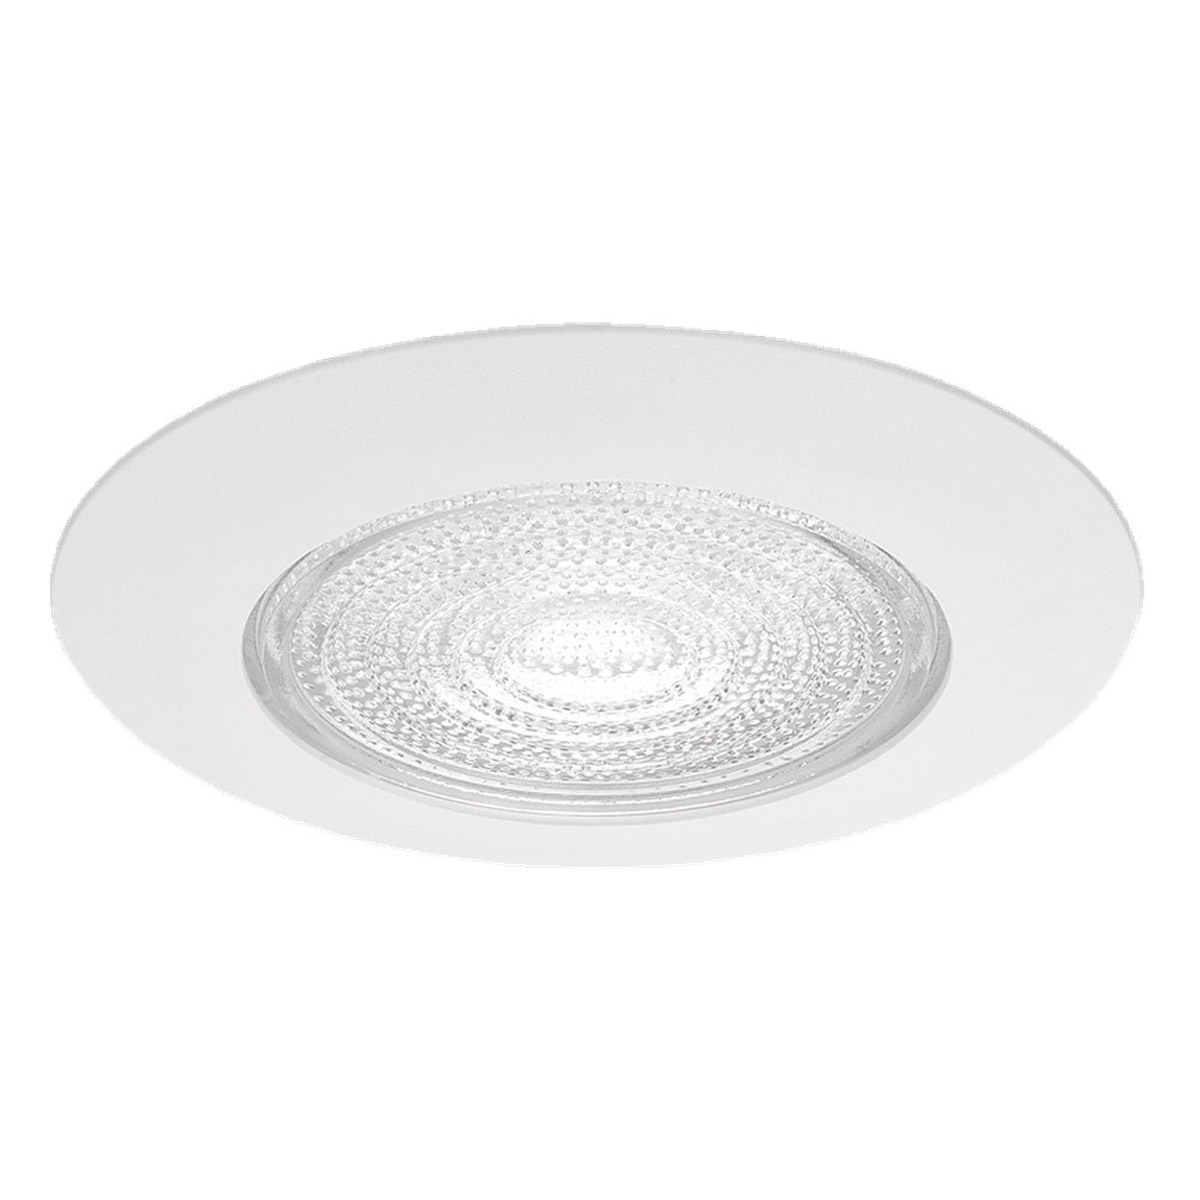 Sea Gull Lighting Signature Recessed Trim Only in White 11255AT-15 photo